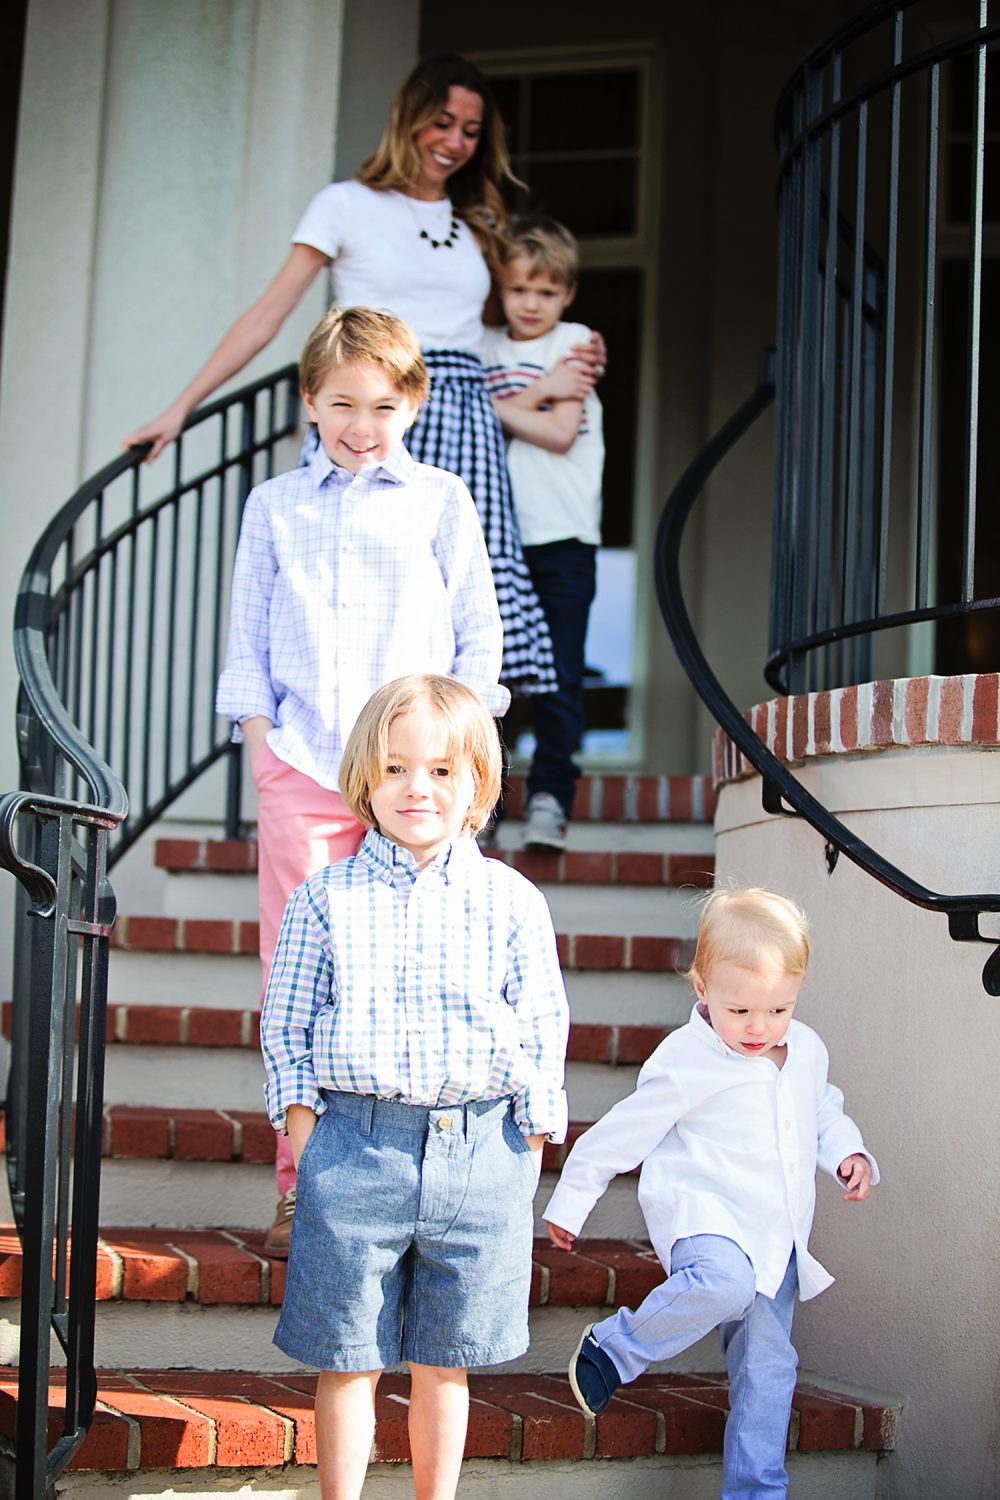 ec3177347a Spring and Easter Outfits for the Family - The Motherchic